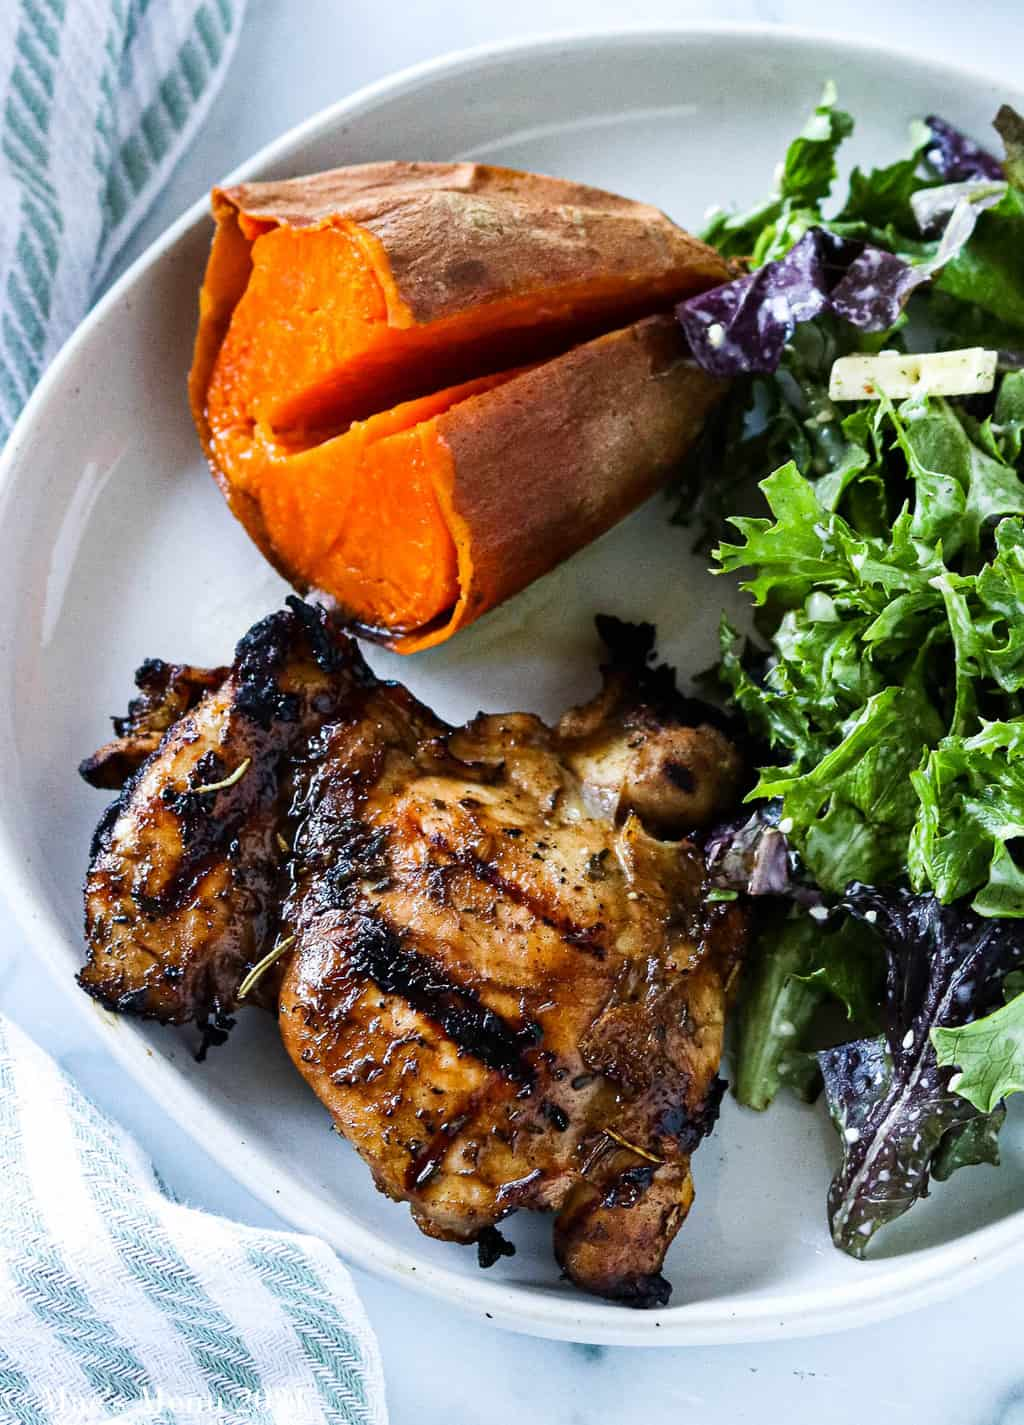 An overehad shot of a plate of the best grilled chicken thighs with a baked sweet potato and green salad